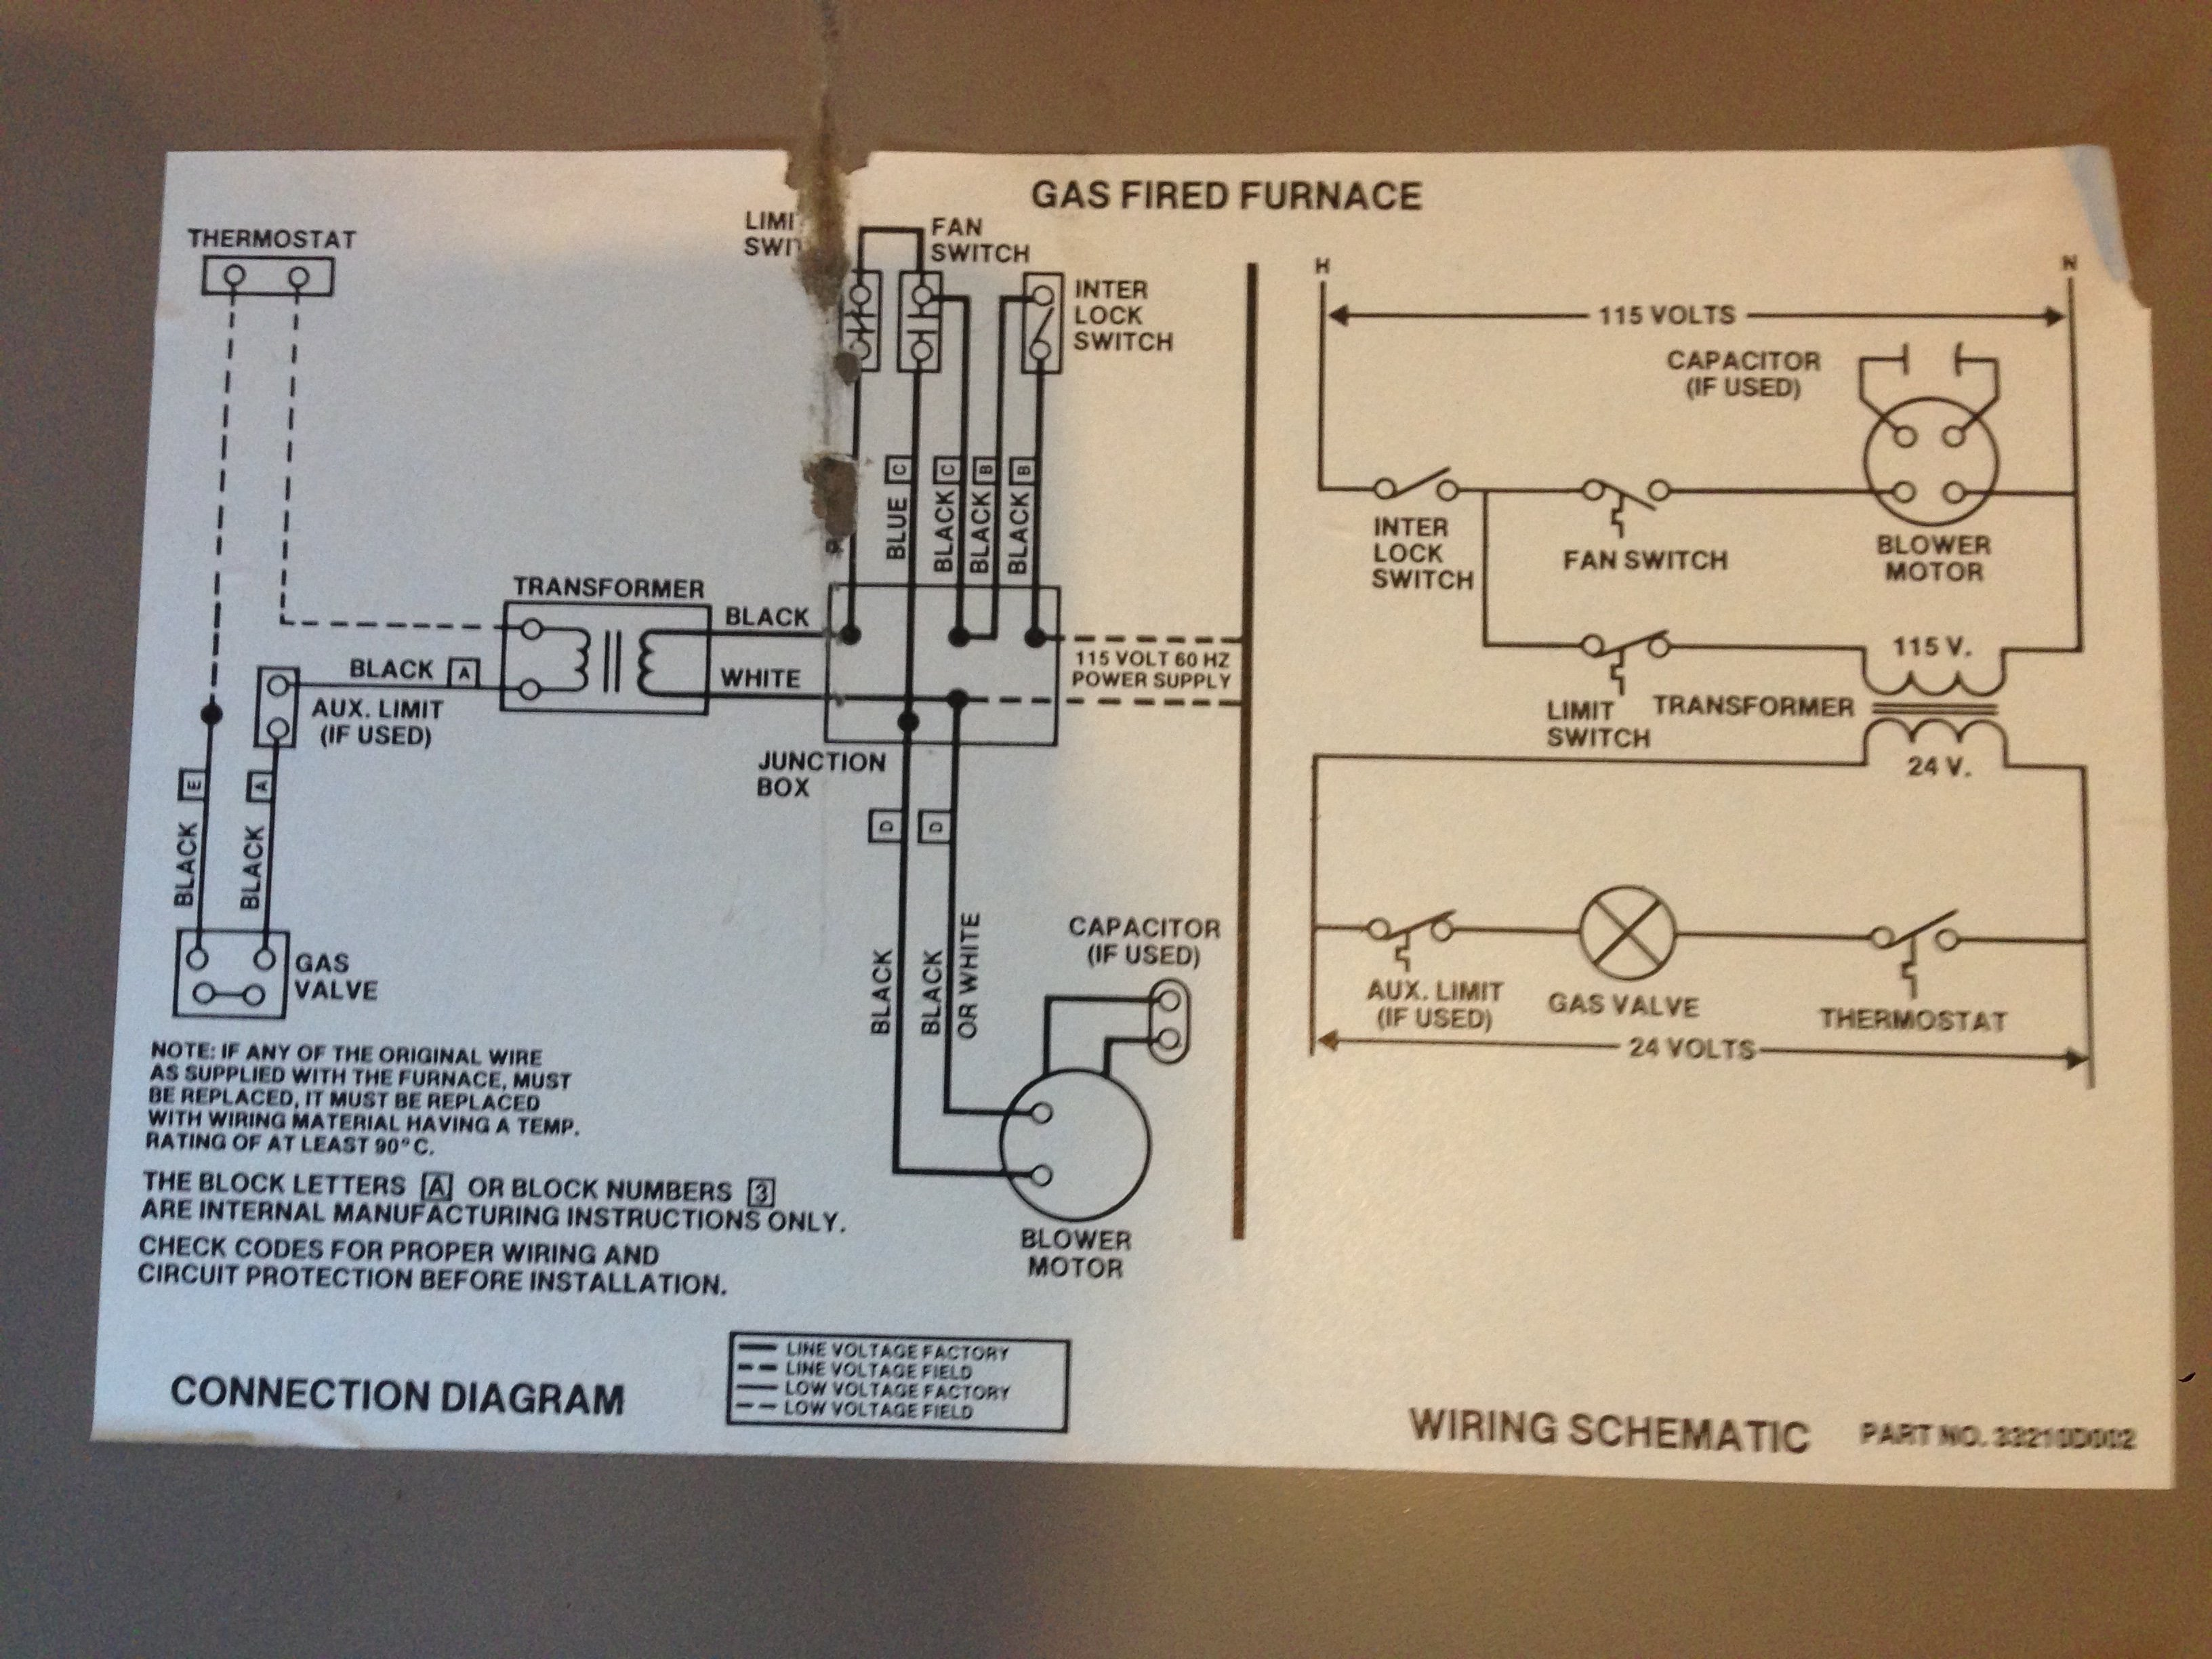 Diagram  Hydrotherm Furnace Wiring Diagram Full Version Hd Quality Wiring Diagram